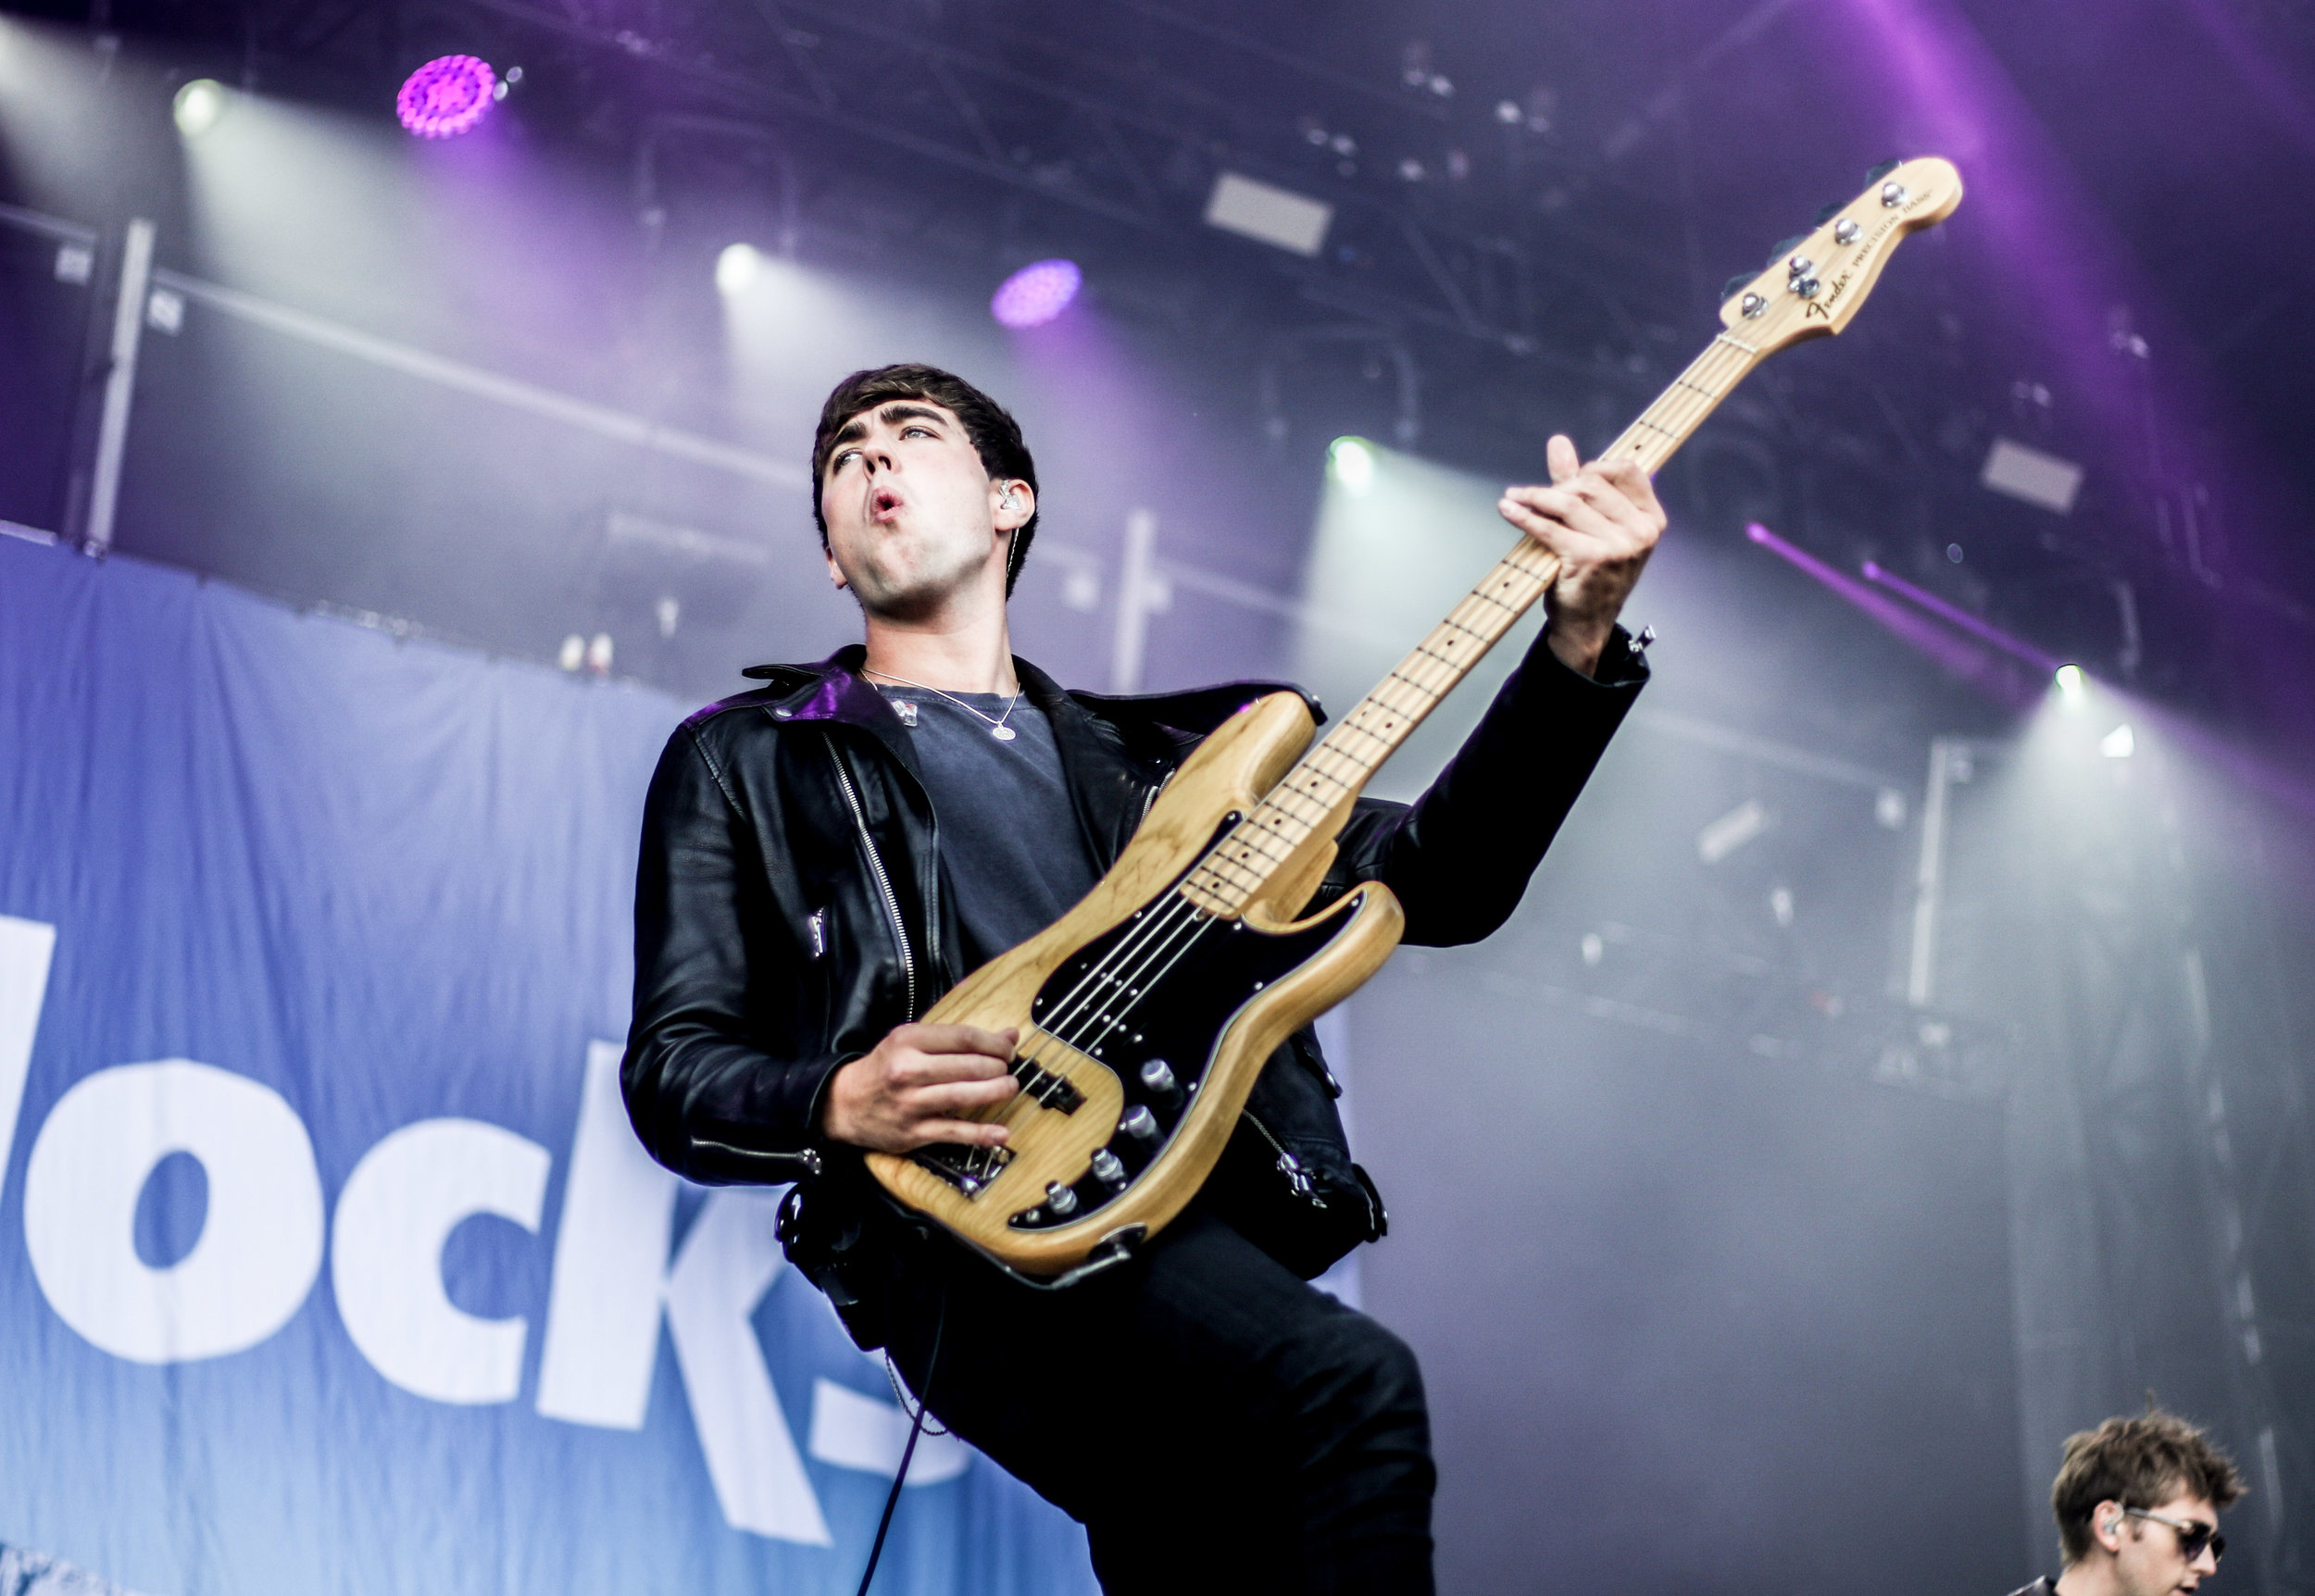 The Sherlocks - Hardwick Live - 18-19-08.19-4.jpg